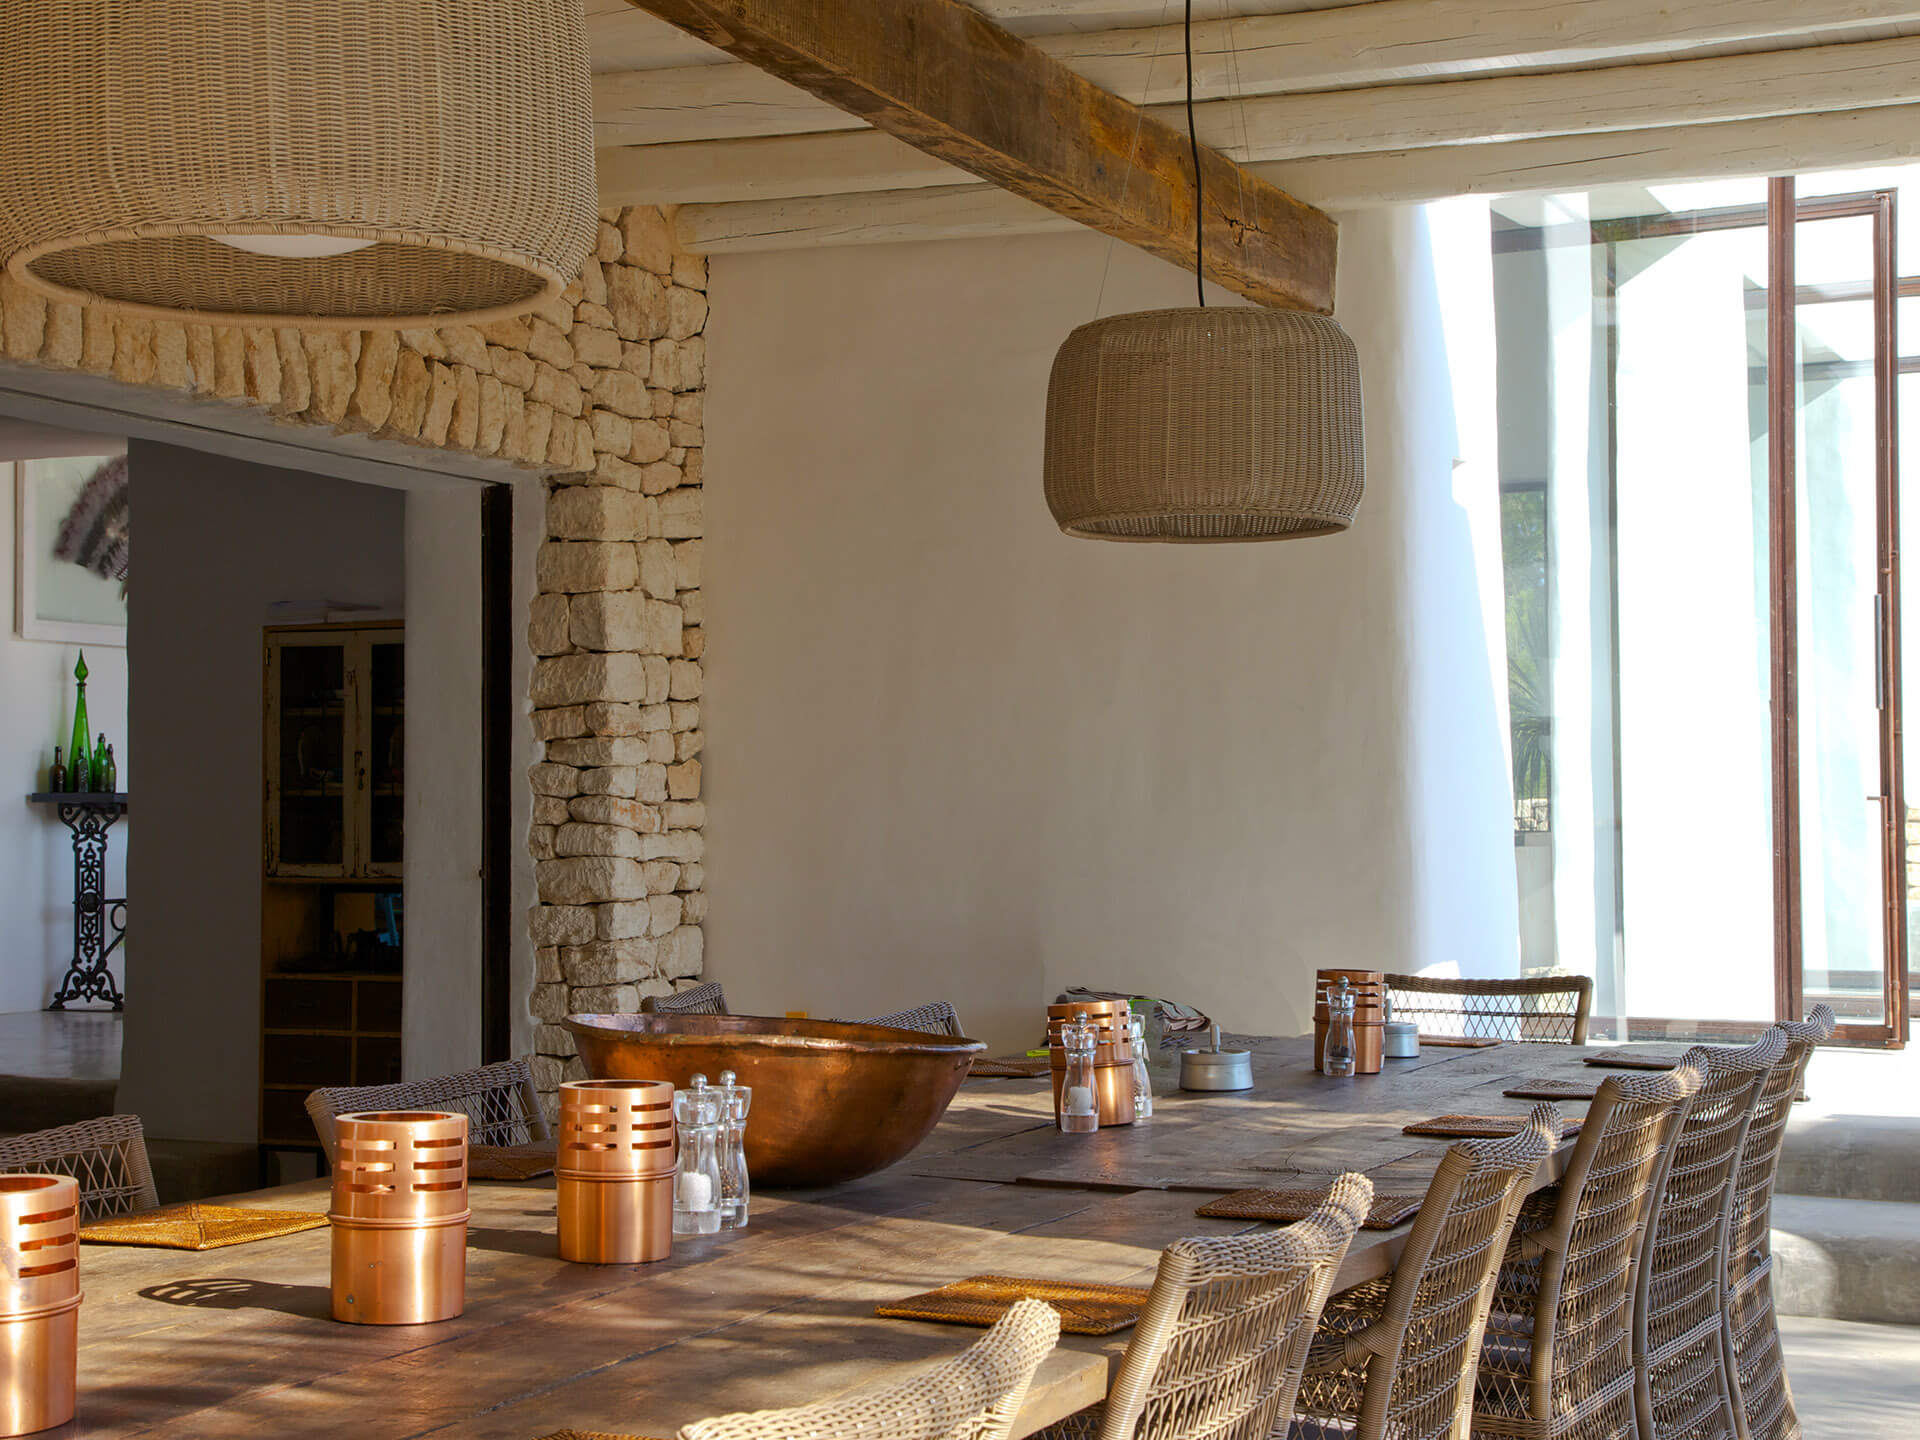 biza-outside-dining-space-wicker-interior